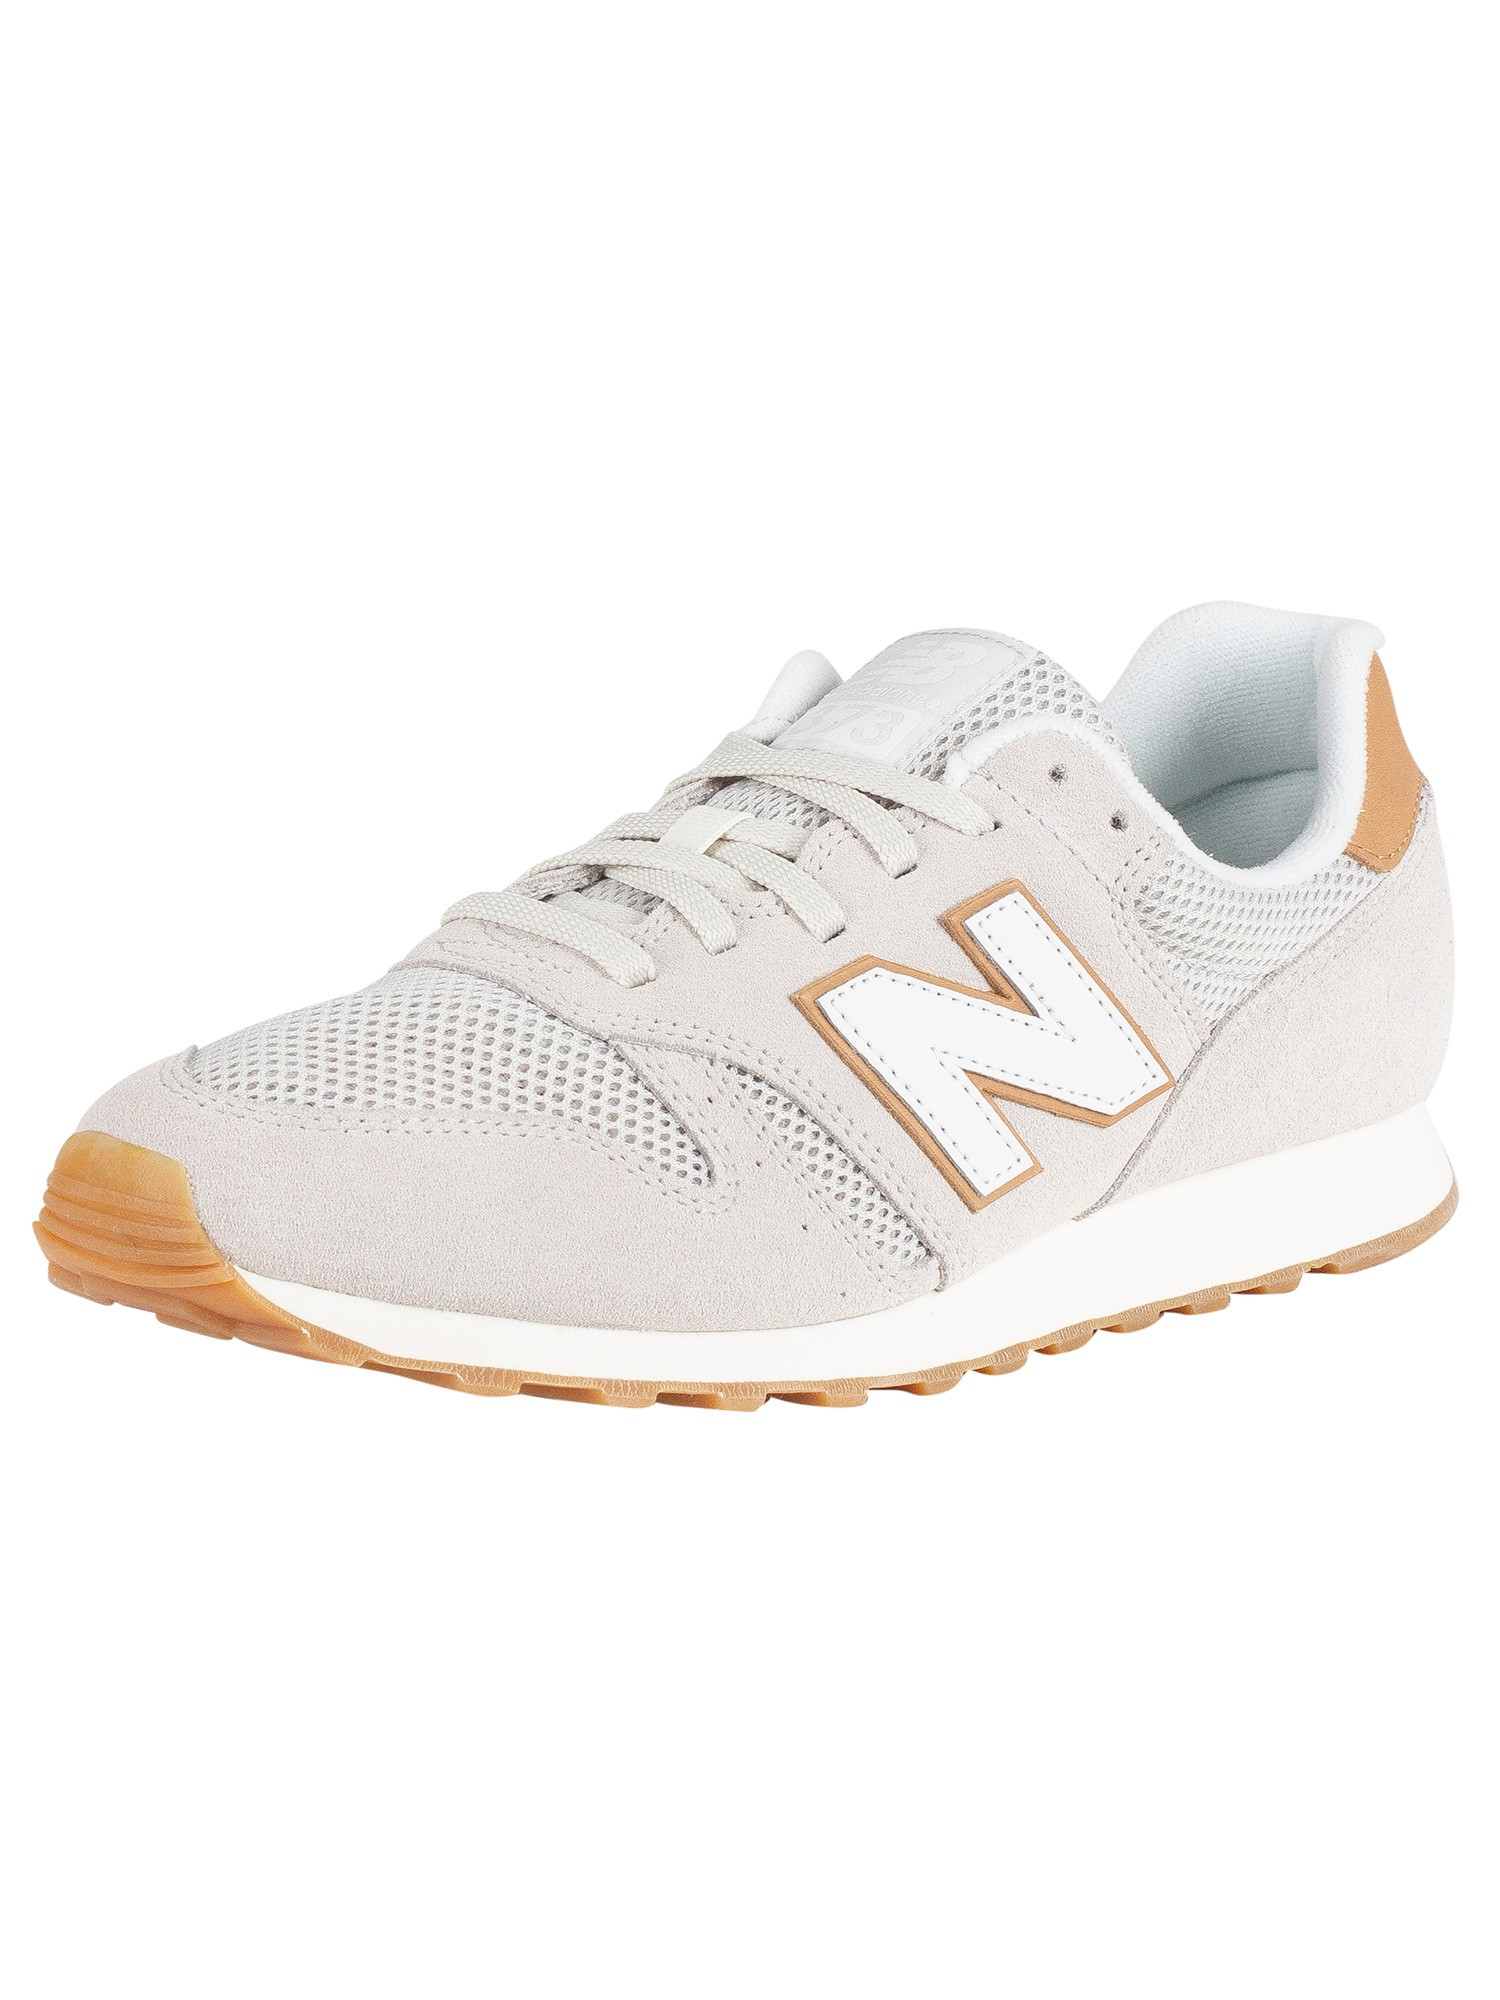 official photos a9638 8bbba New Balance 373 Suede Trainers - Beige/Tan